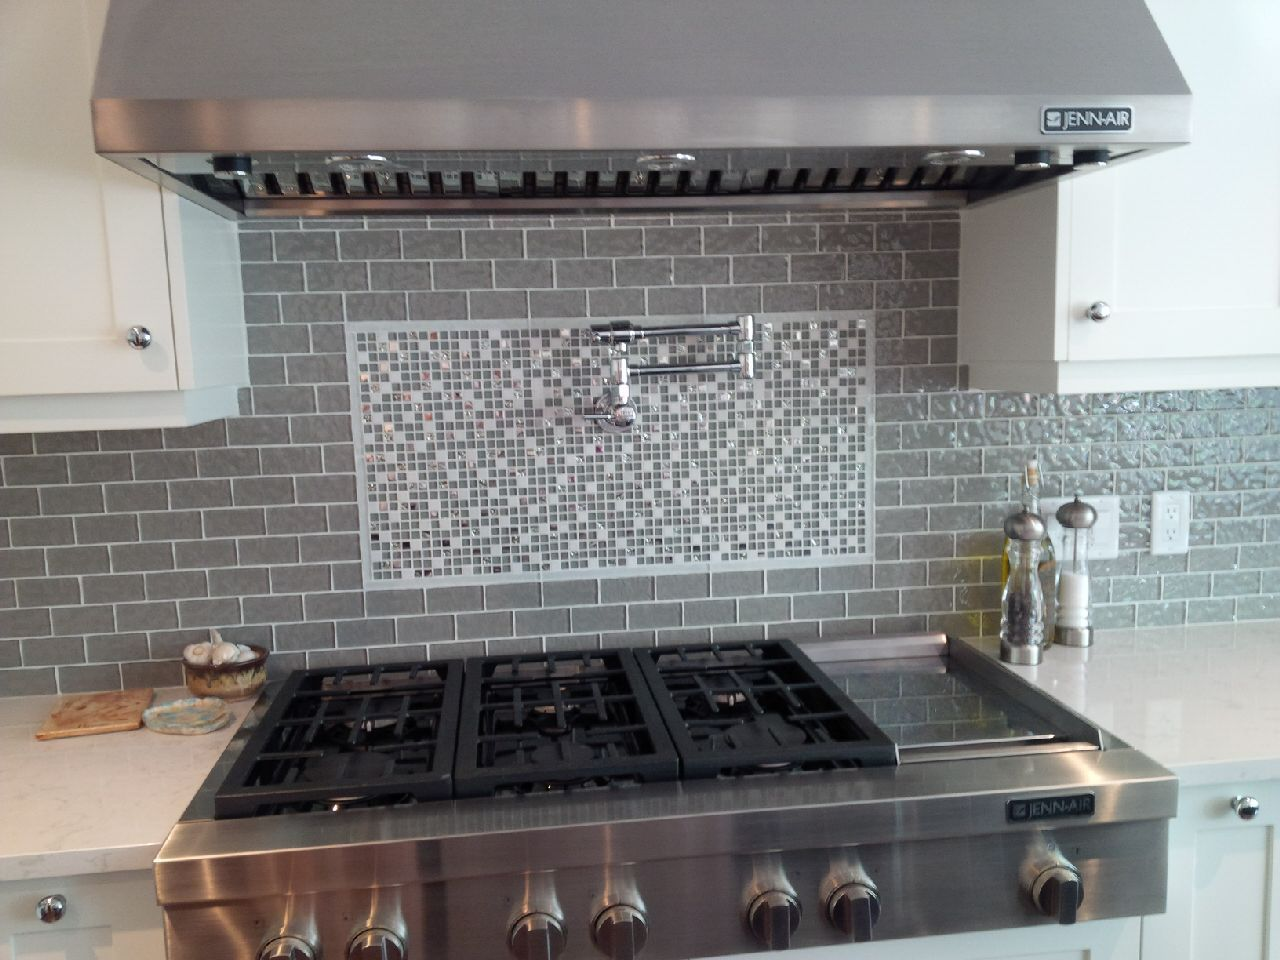 kitchens backsplash glass 2x4 mosaic with 5 8x5 8 mosaic kitchens backsplash glass 2x4 mosaic with 5 8x5 8 mosaic picture frame